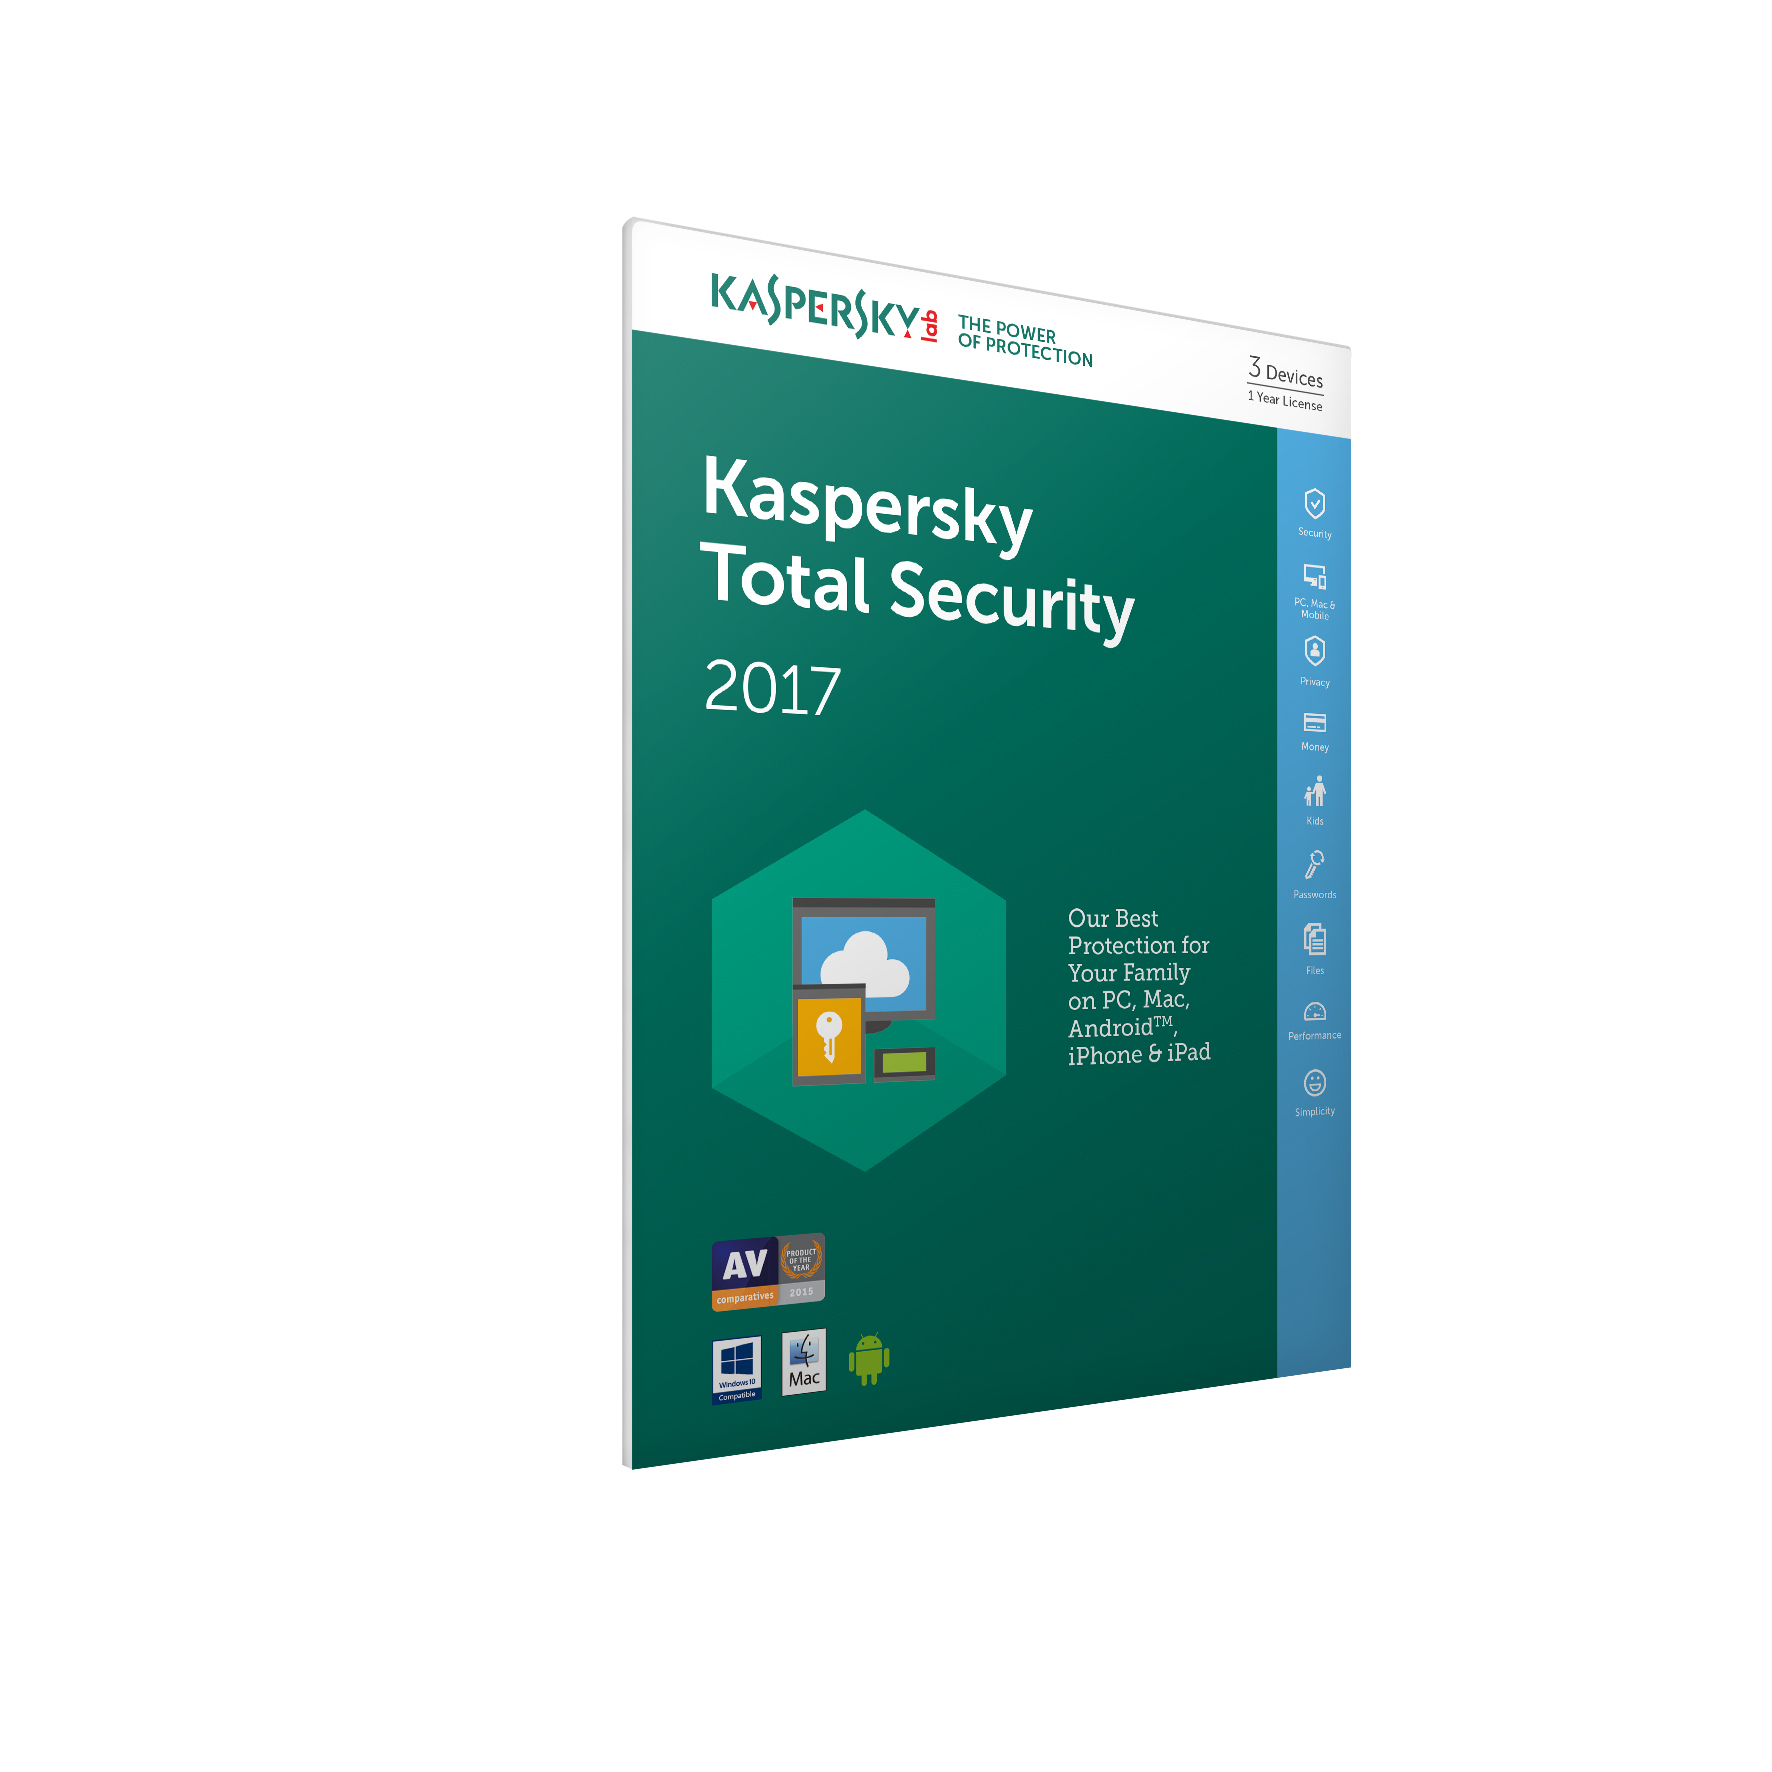 Kaspersky Lab Kaspersky Total Security 2017 - 3 Devices 1 Year (Frustration Free Packaging)